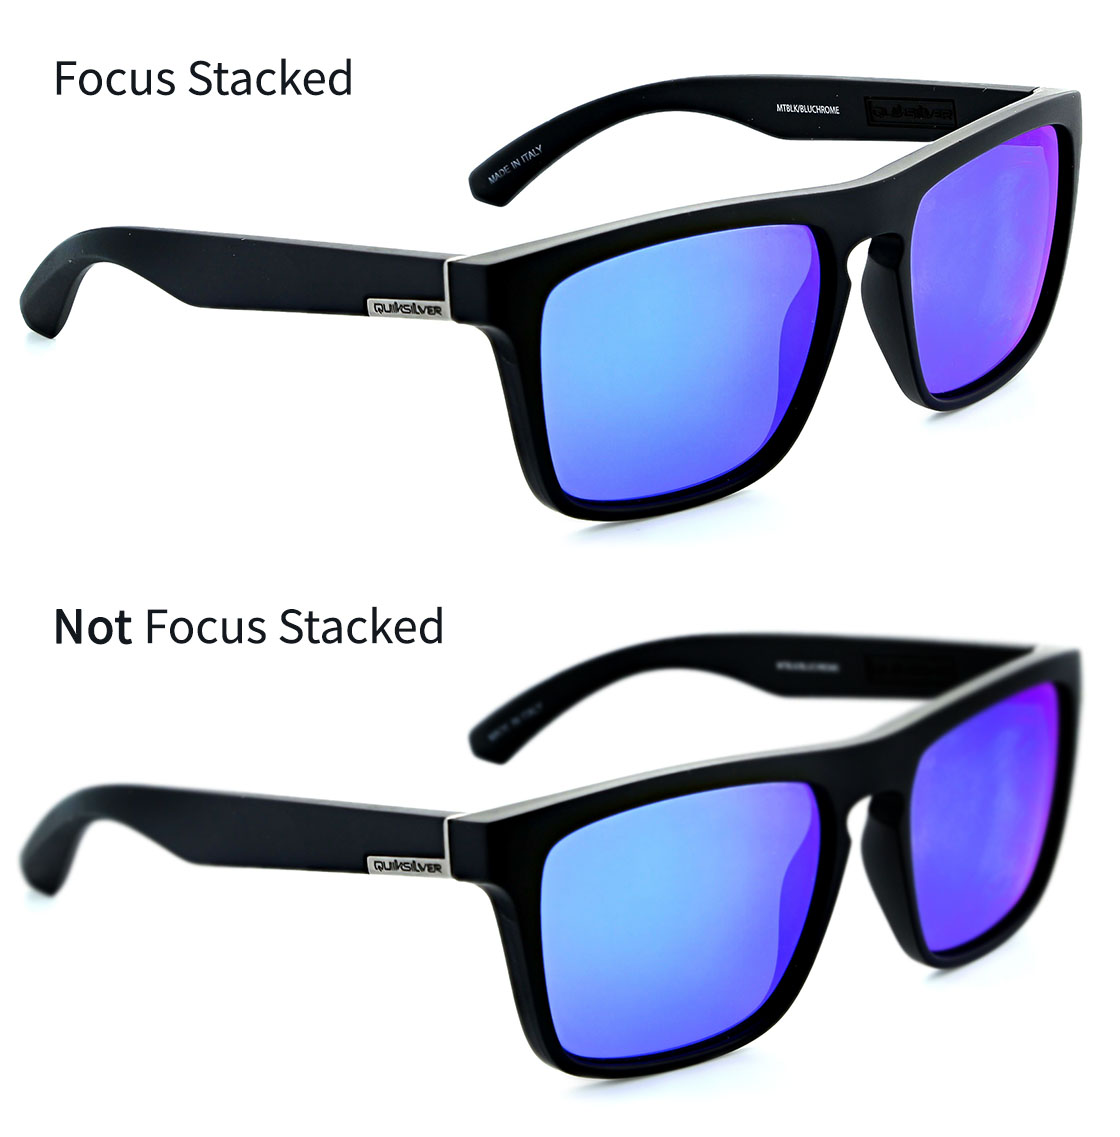 Ortery eyewear photography solution displaying an example of a software feature called Focus Stacking that allows users to obtain full image focus automatically.